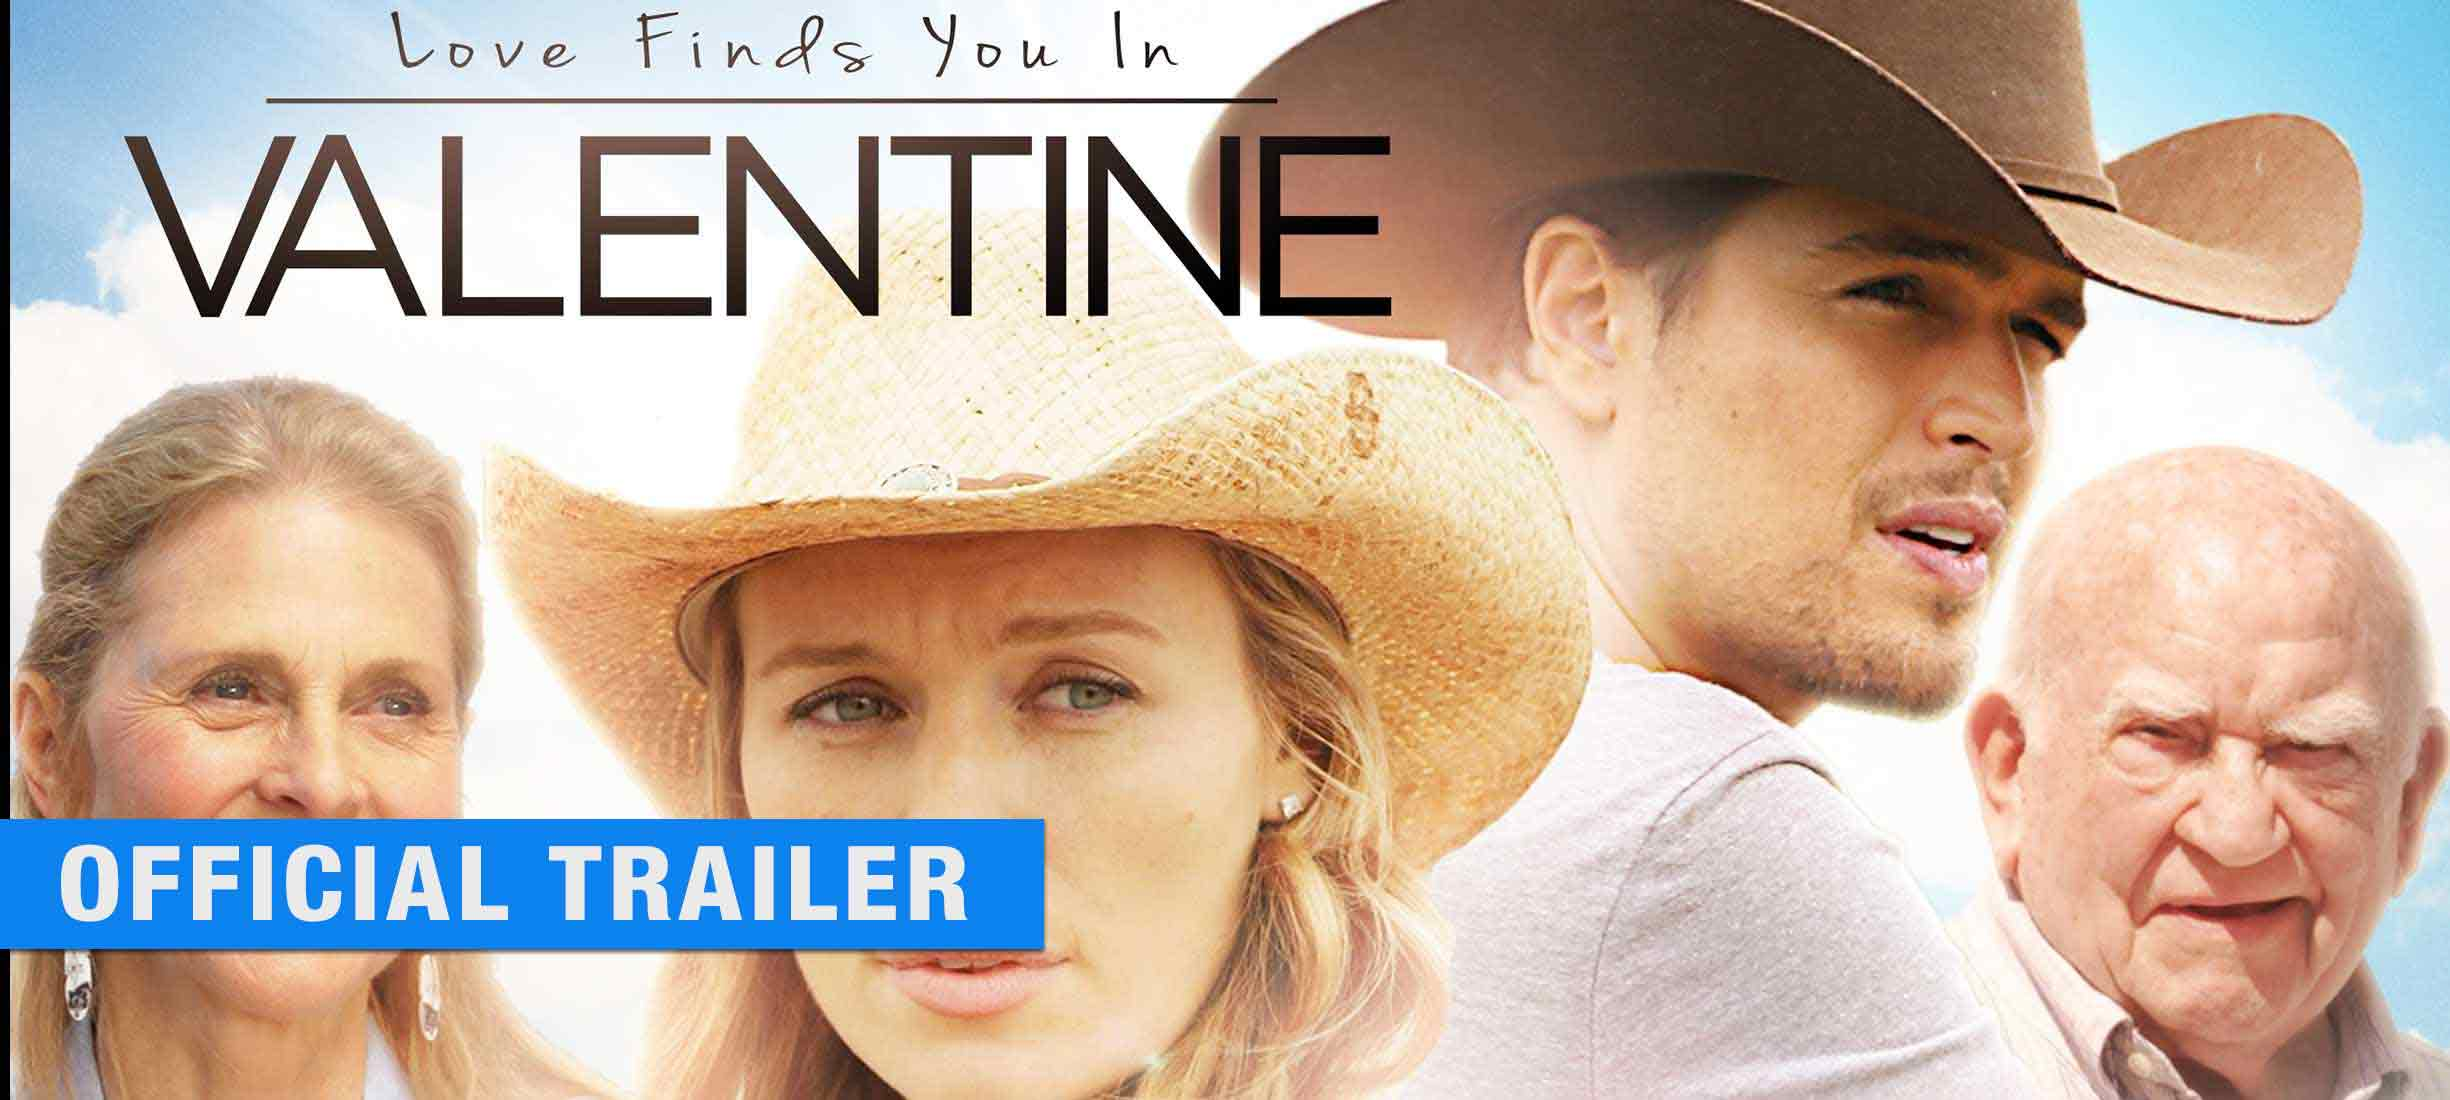 Love Finds You In Valentine: Trailer